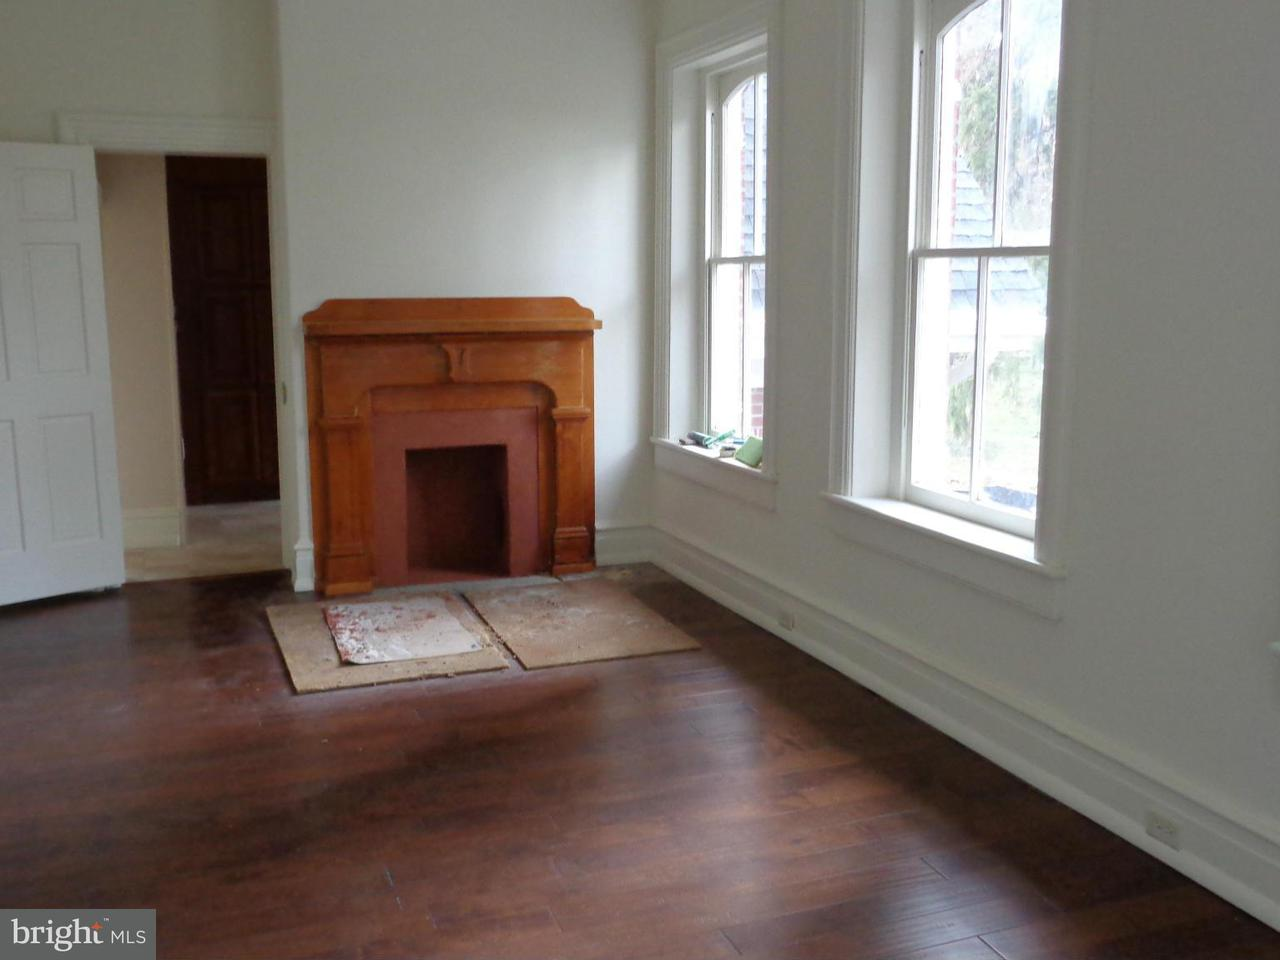 Single Family Home for Sale at 213 Prince Street 213 Prince Street Shippensburg, Pennsylvania 17257 United States